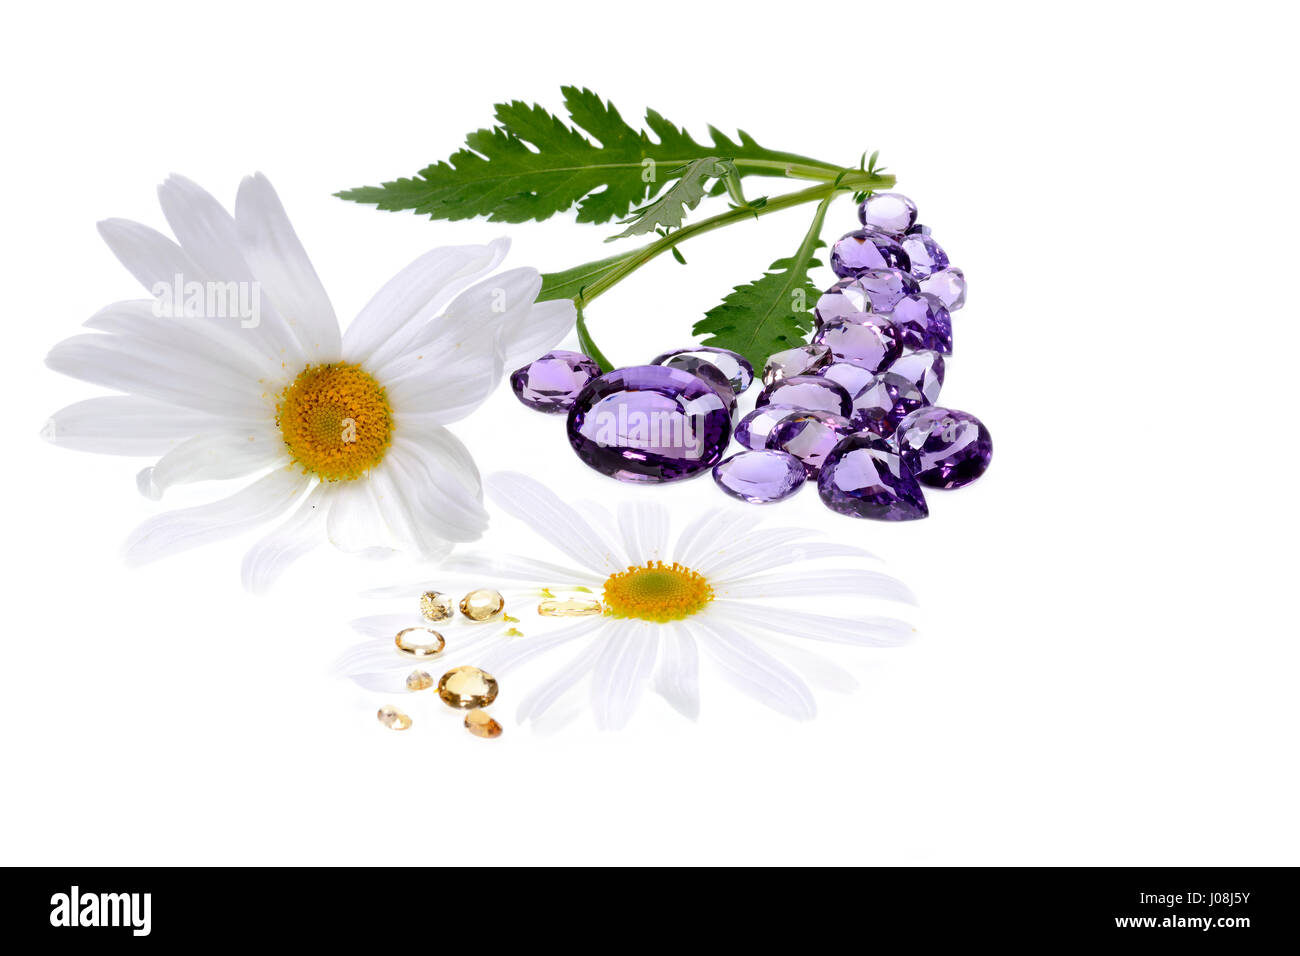 Crystal Therapy with precious stones and white background. Amethyst and yellow topaz. - Stock Image